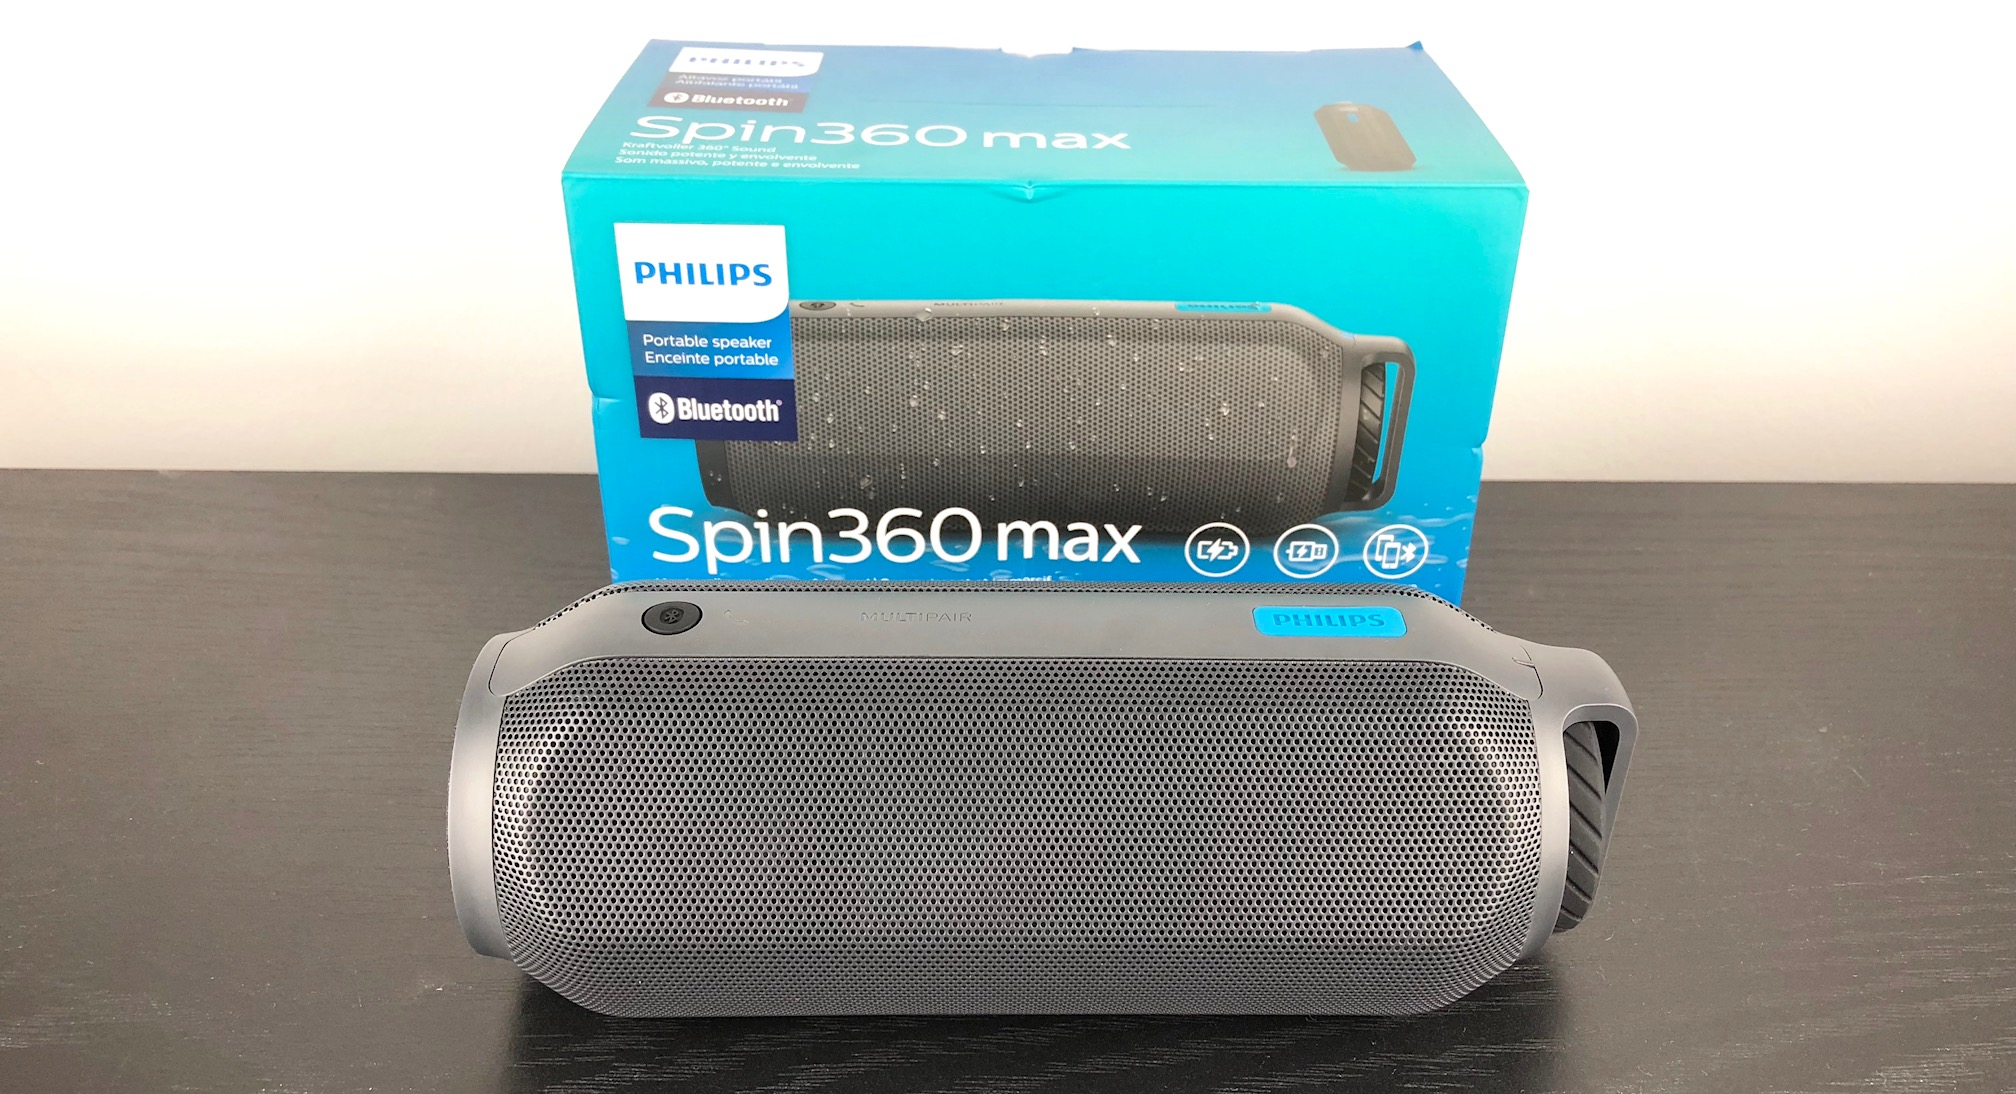 Philips Spin360max BT 7700 Test